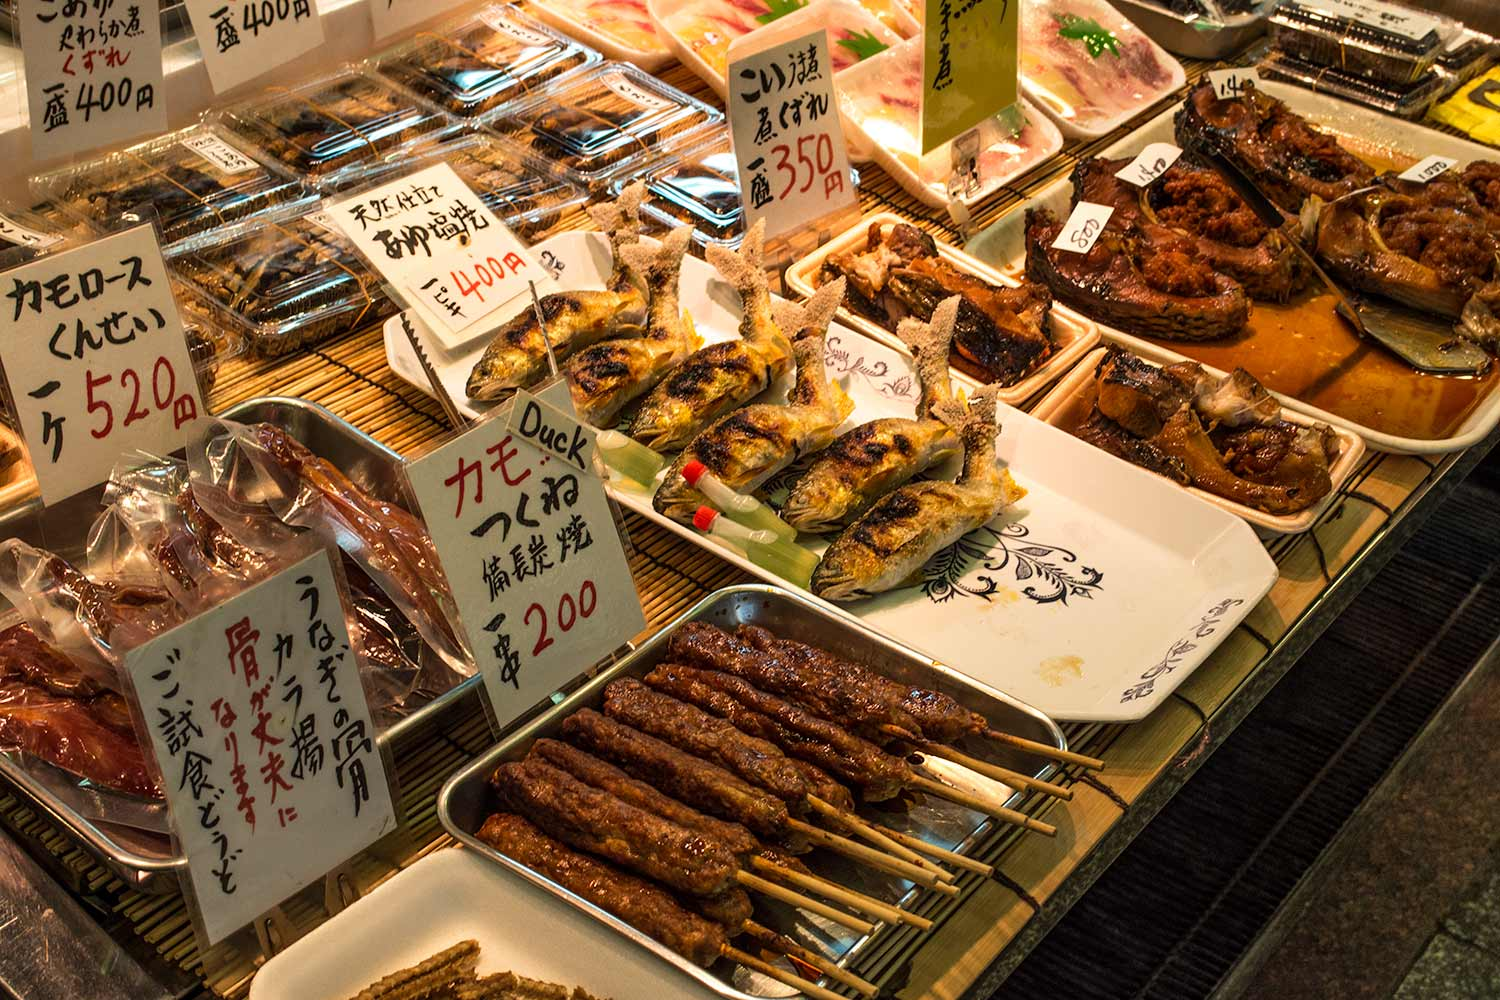 A selection of skewers, fish and oddities.